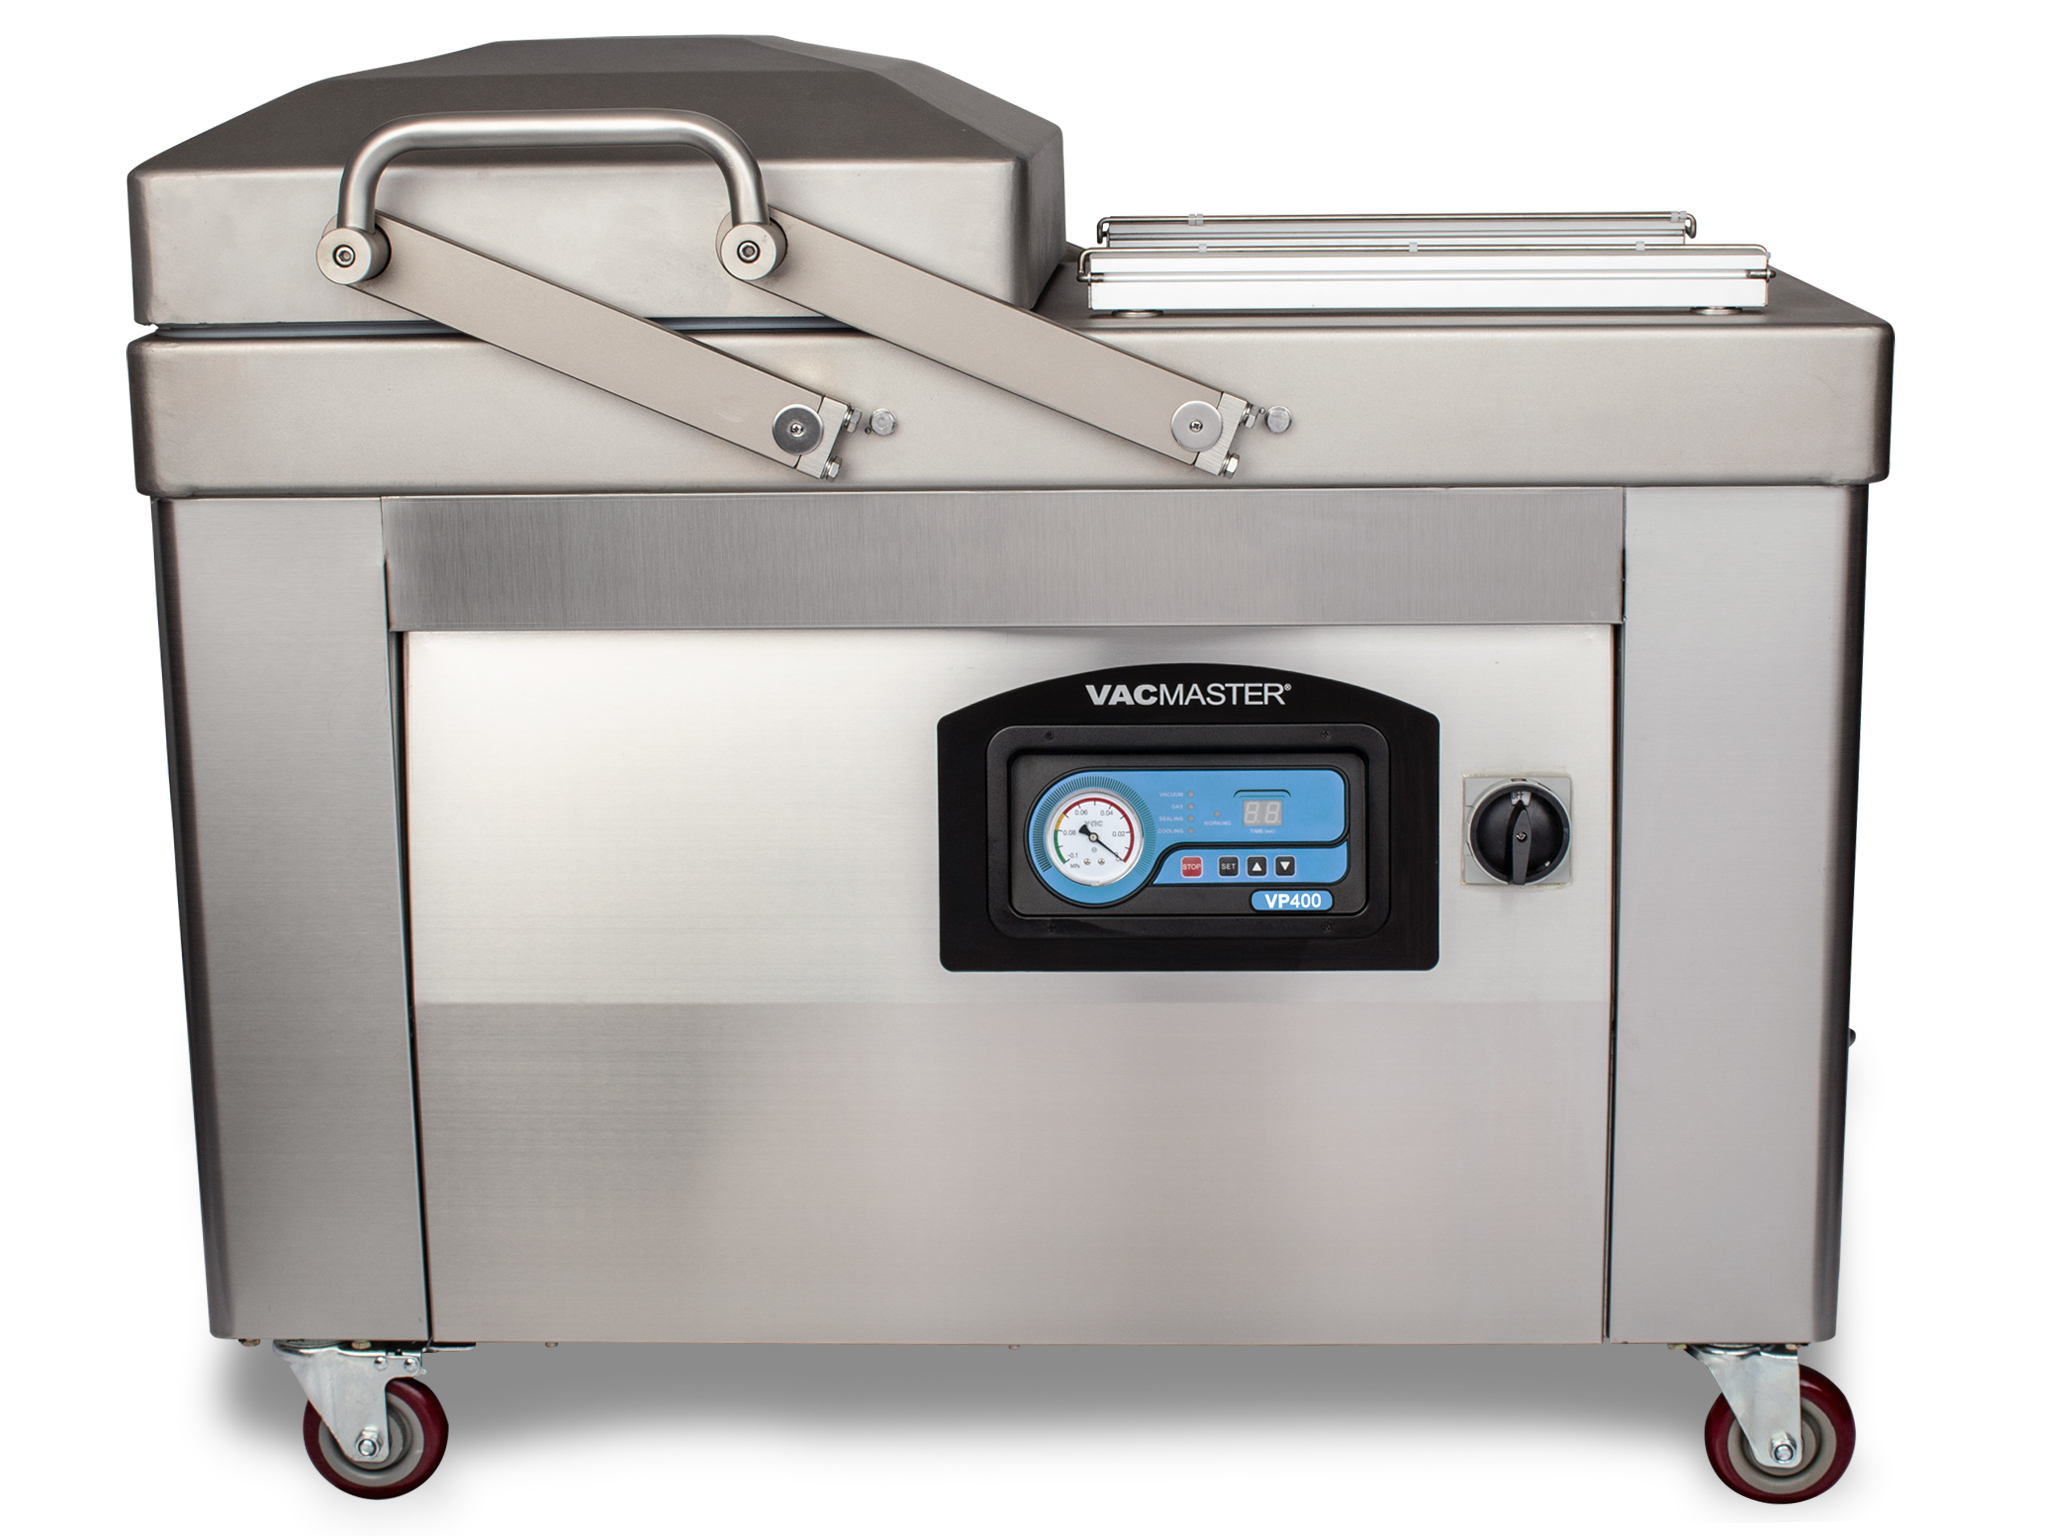 VacMaster VP400 Double Chamber Vacuum Sealer